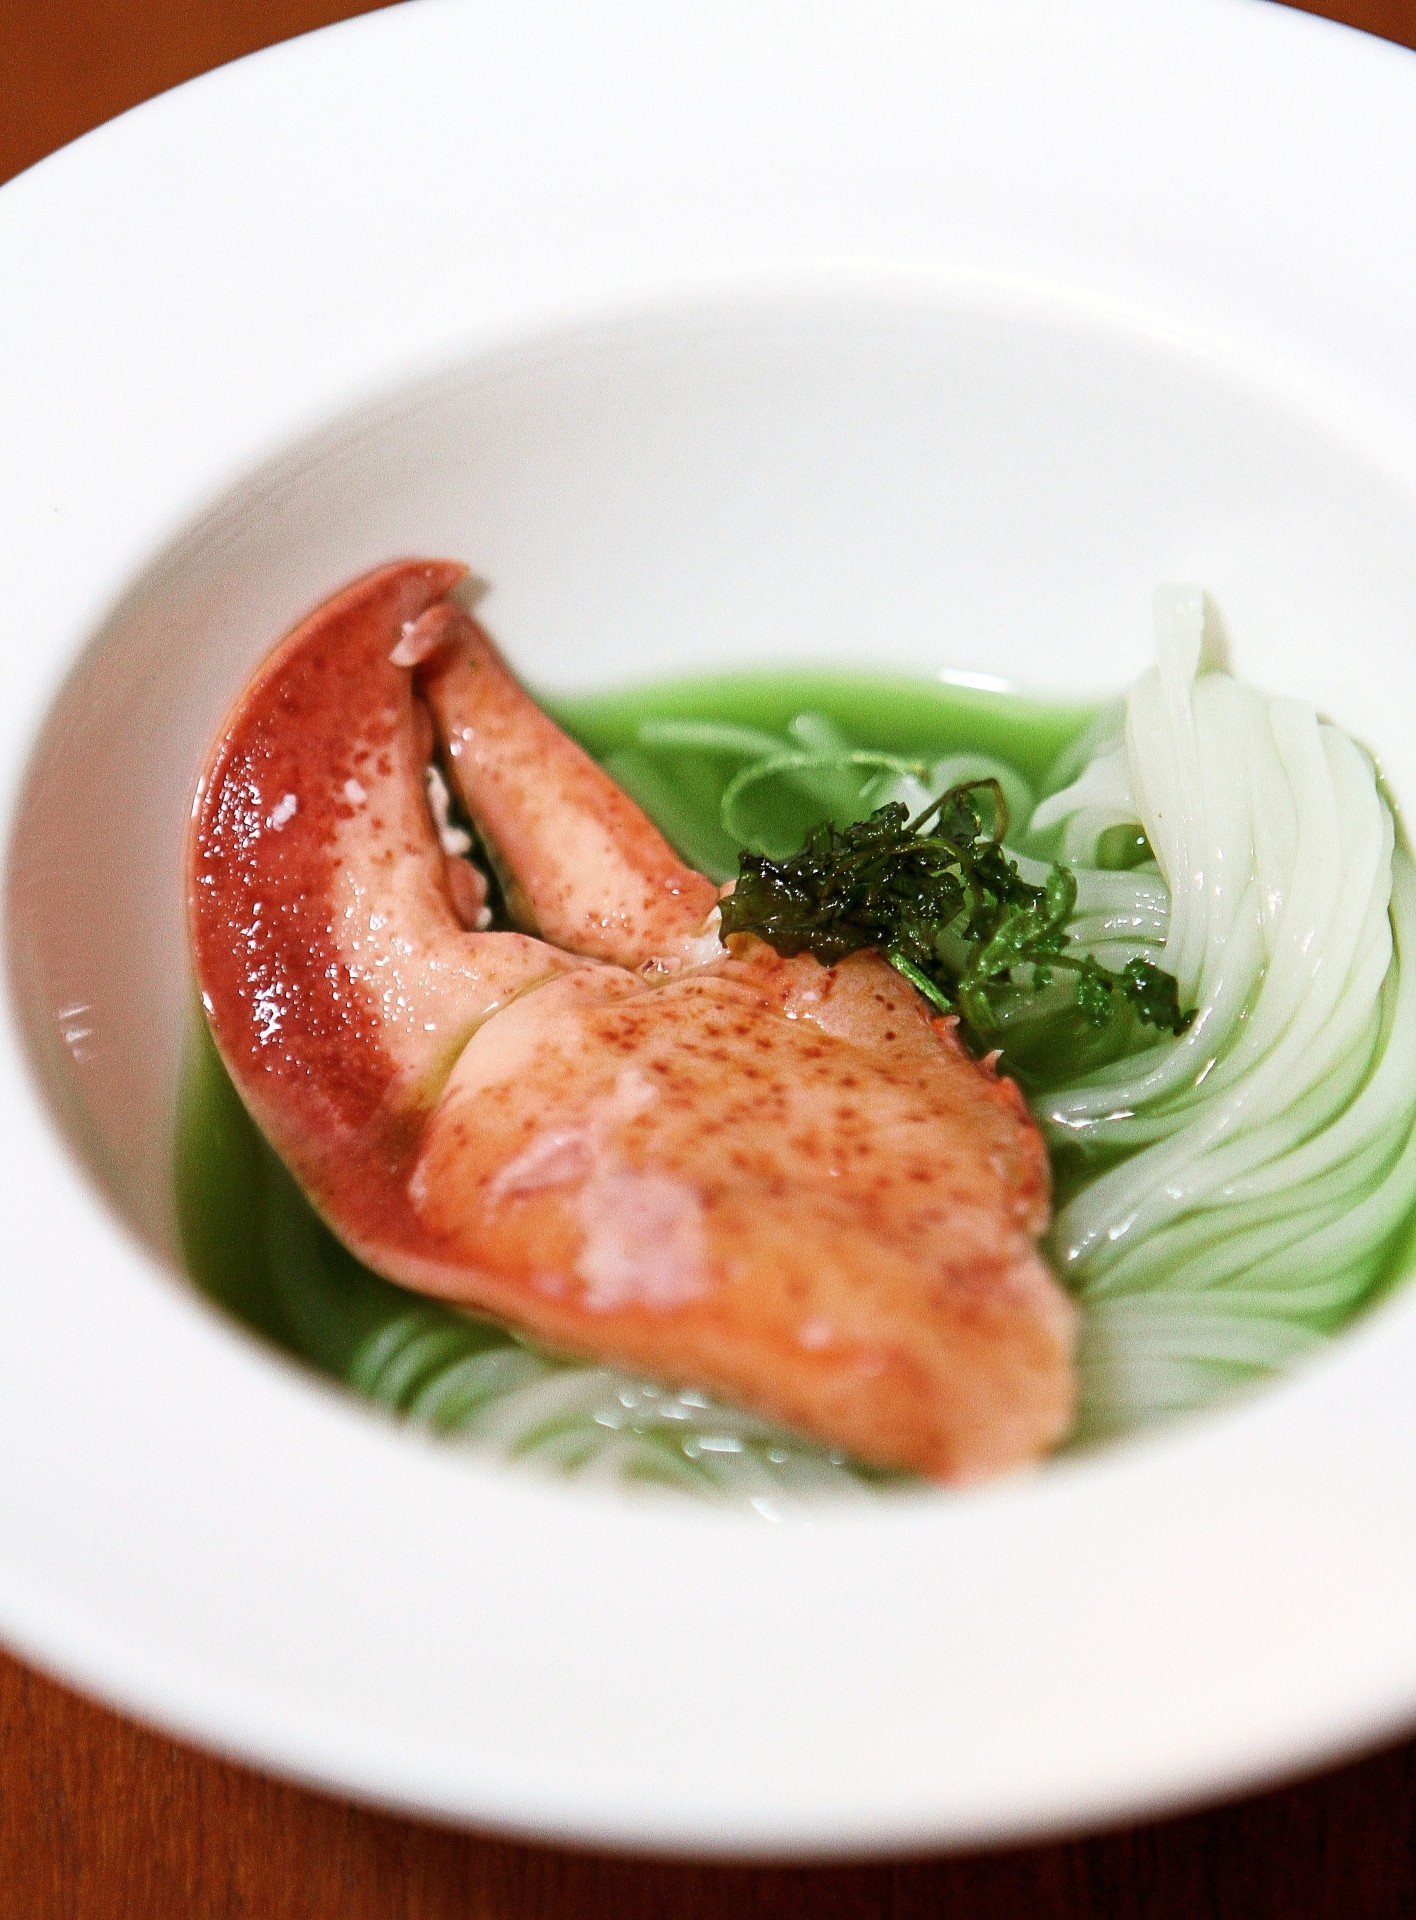 Local watercress is pureed for the Cold Inaniwa with Lobster, Watercress Soup.